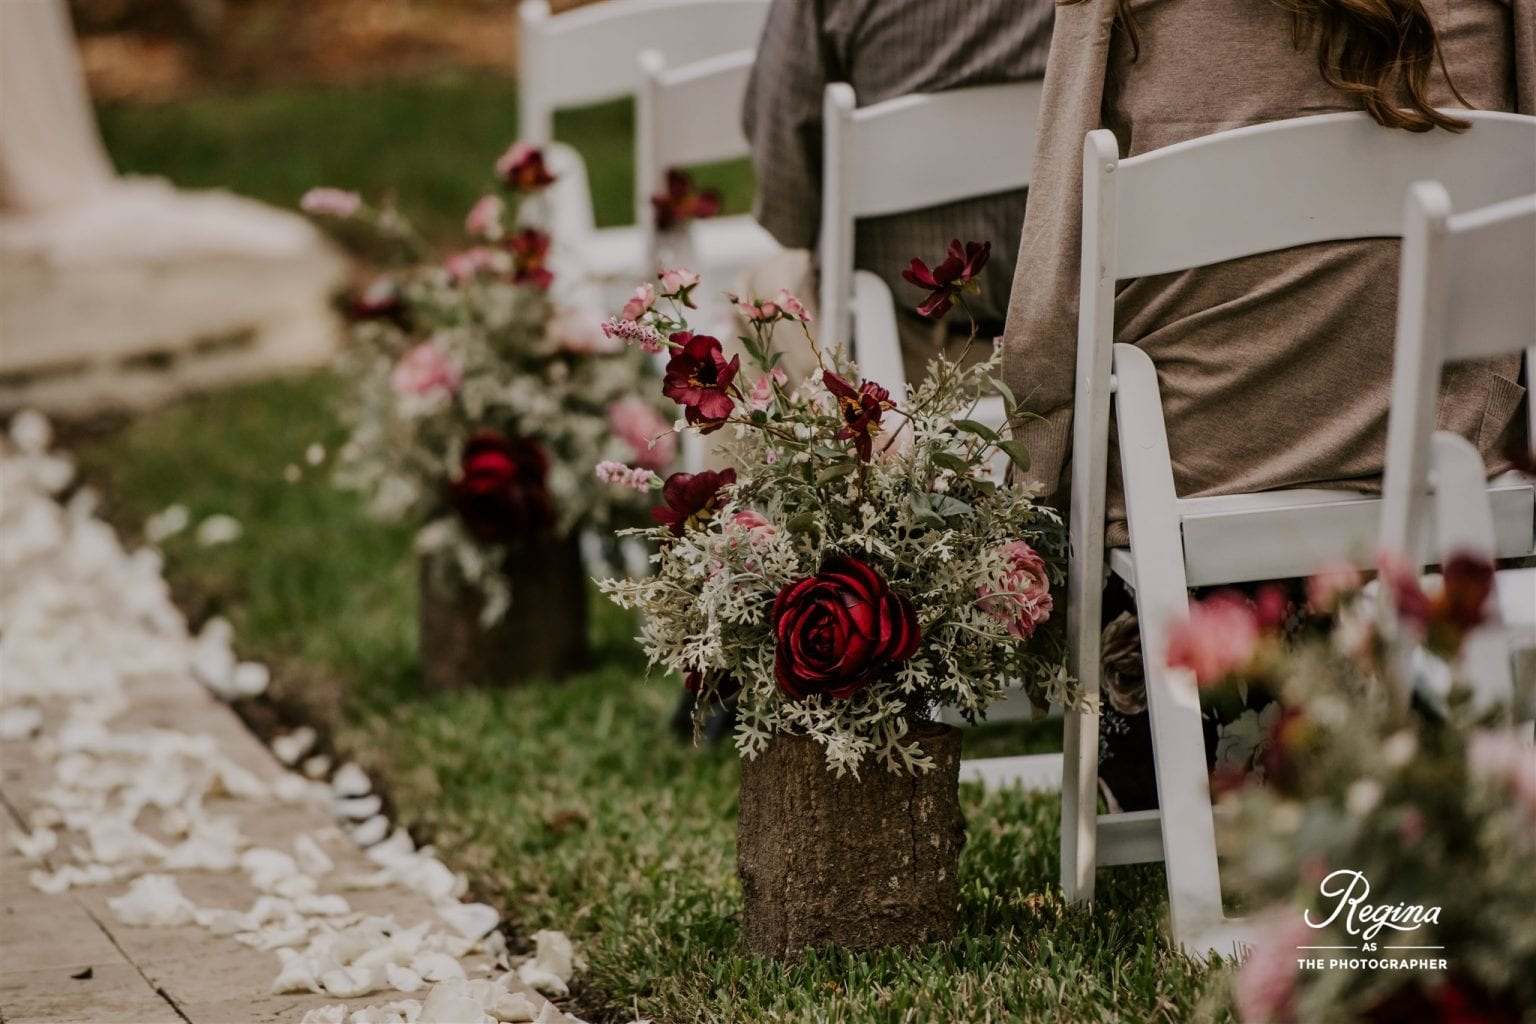 Wooden stumps with fall flower arrangements lining the ceremony aisle